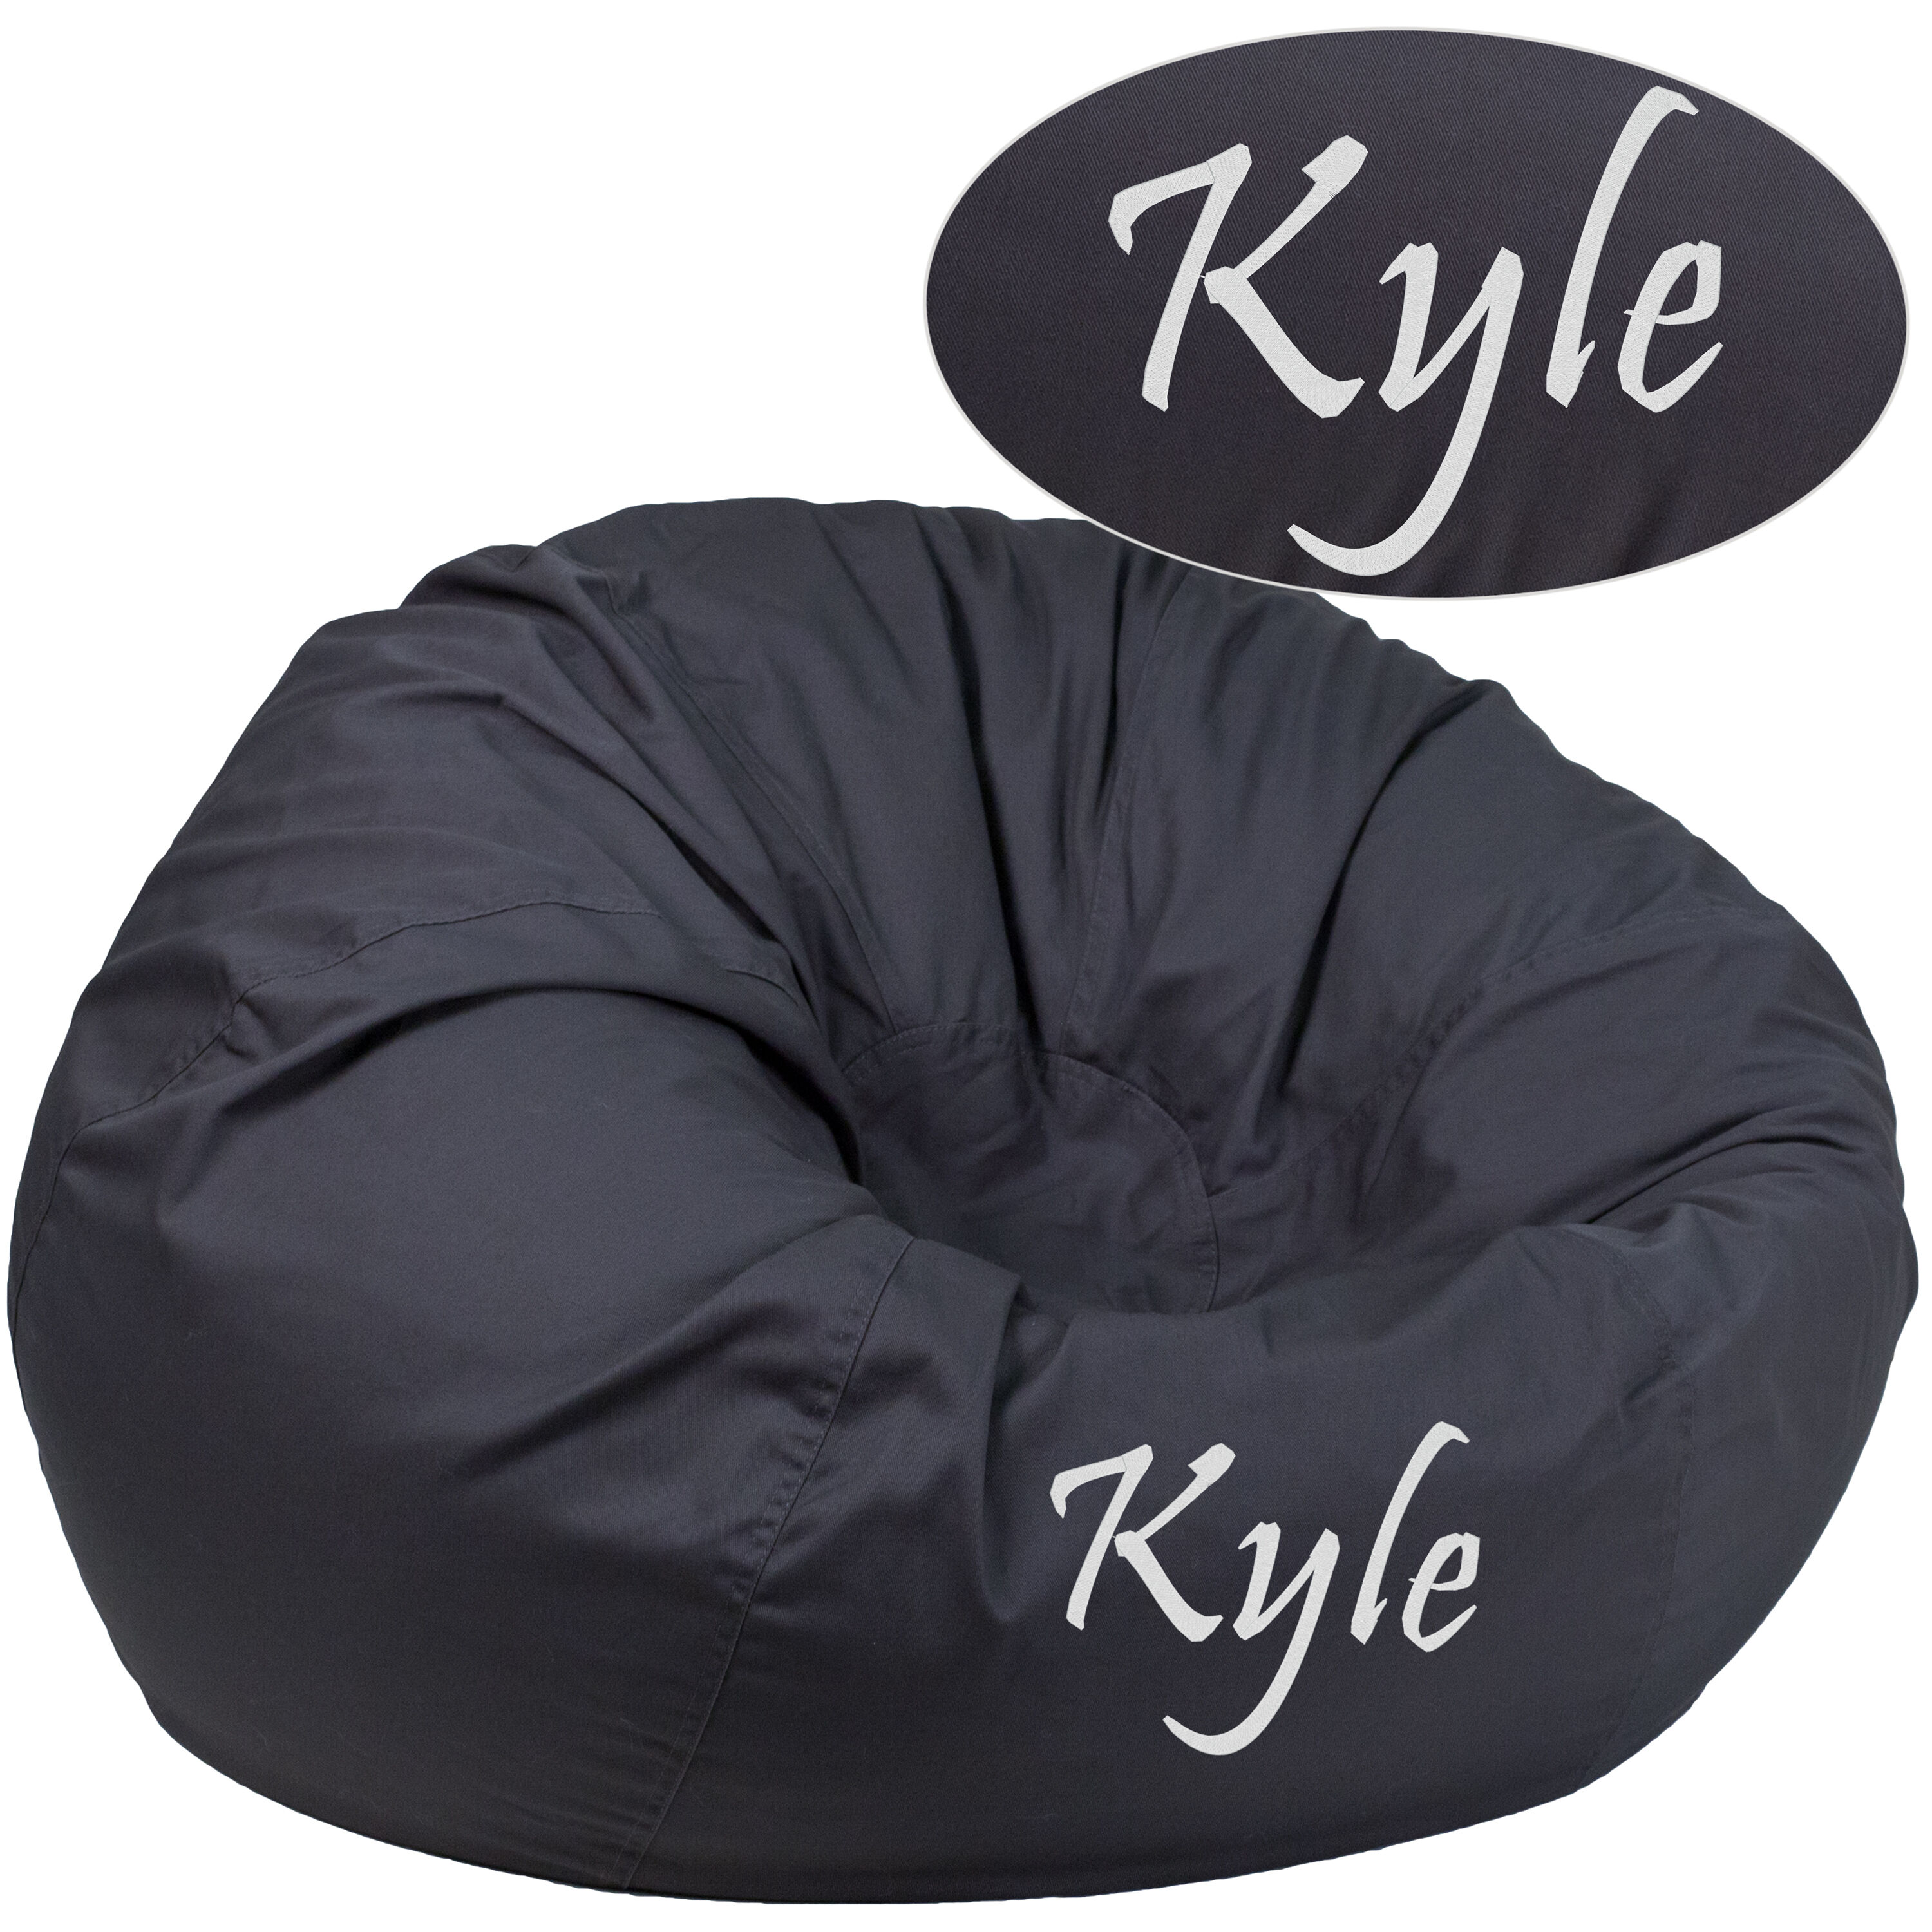 Merveilleux Personalized Oversized Solid Gray Bean Bag Chair